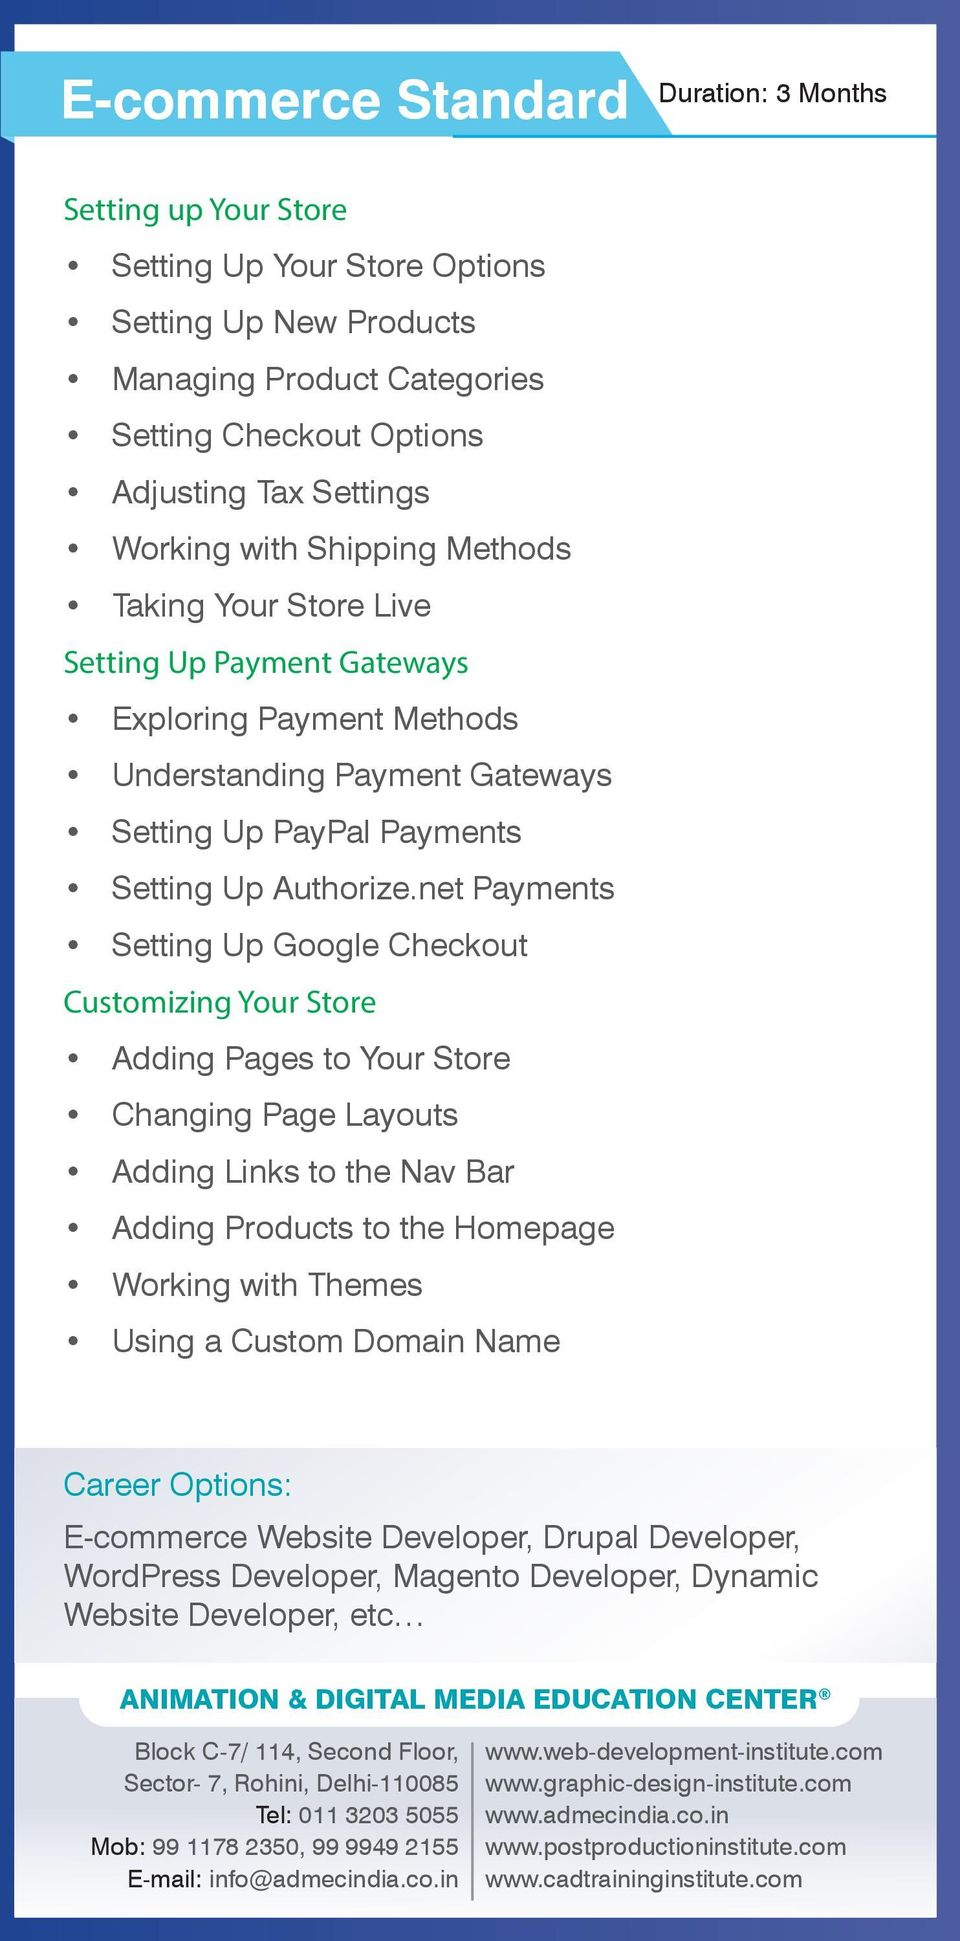 net Payments Setting Up Google Checkout Customizing Your Store Adding Pages to Your Store Changing Page Layouts Adding Links to the Nav Bar Adding Products to the Homepage Working with Themes Using a